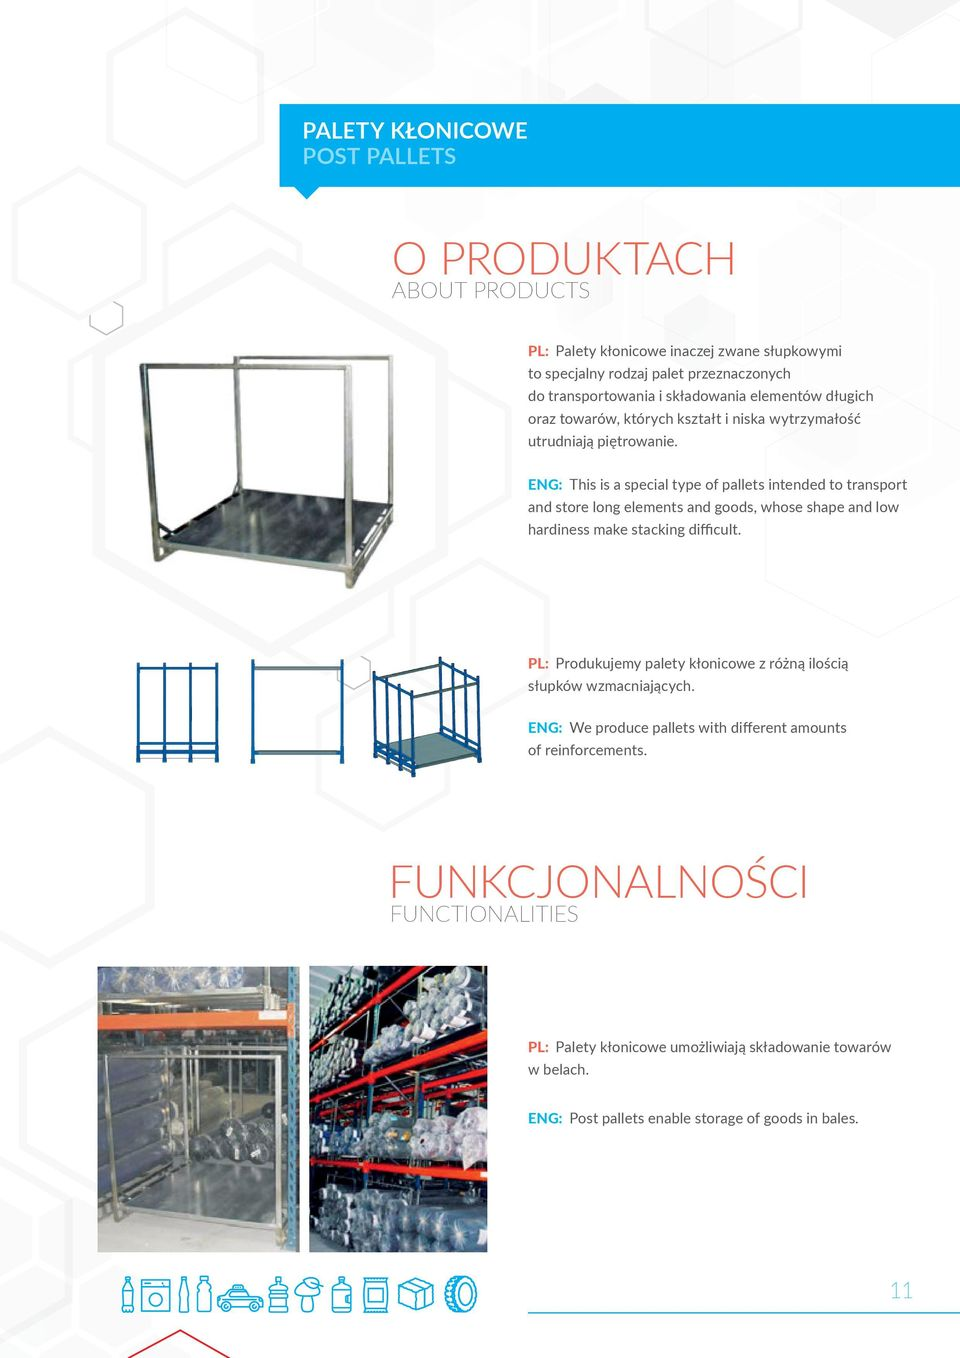 ENG: This is a special type of pallets intended to transport and store long elements and goods, whose shape and low hardiness make stacking difficult.